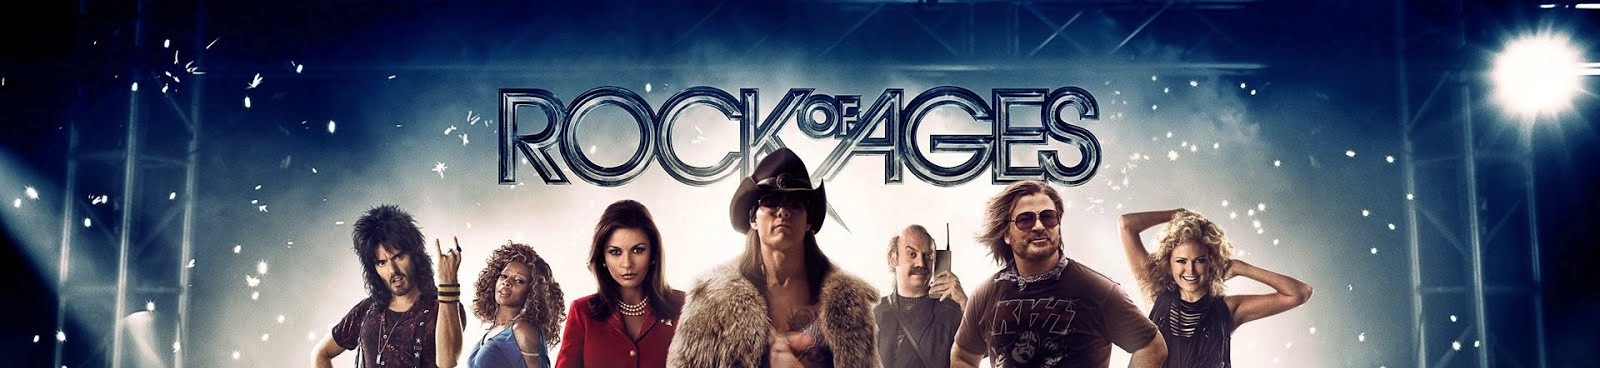 DVD Recension Rock of Ages GG+